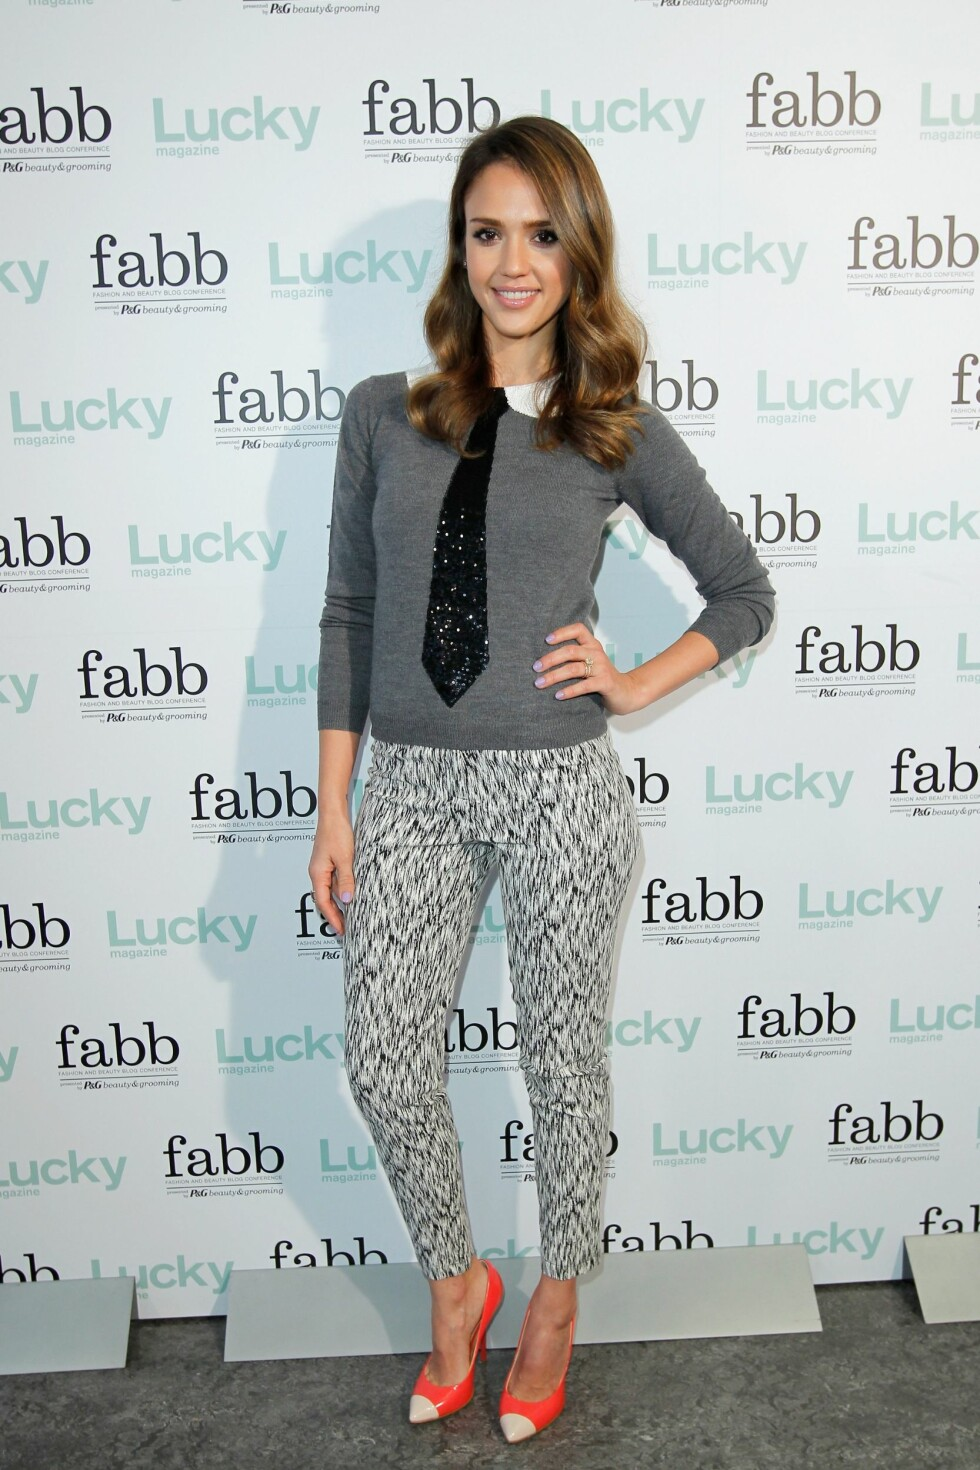 SANTA MONICA, CA - APRIL 30:  Actress Jessica Alba attends the Lucky Magazine Hosts First West Coast FABB: Fashion and Beauty Blog Conference held at Annenberg Beach House on April 30, 2012 in Santa Monica, California.  (Photo by Donato Sardella/WireImage) Foto: All Over Press